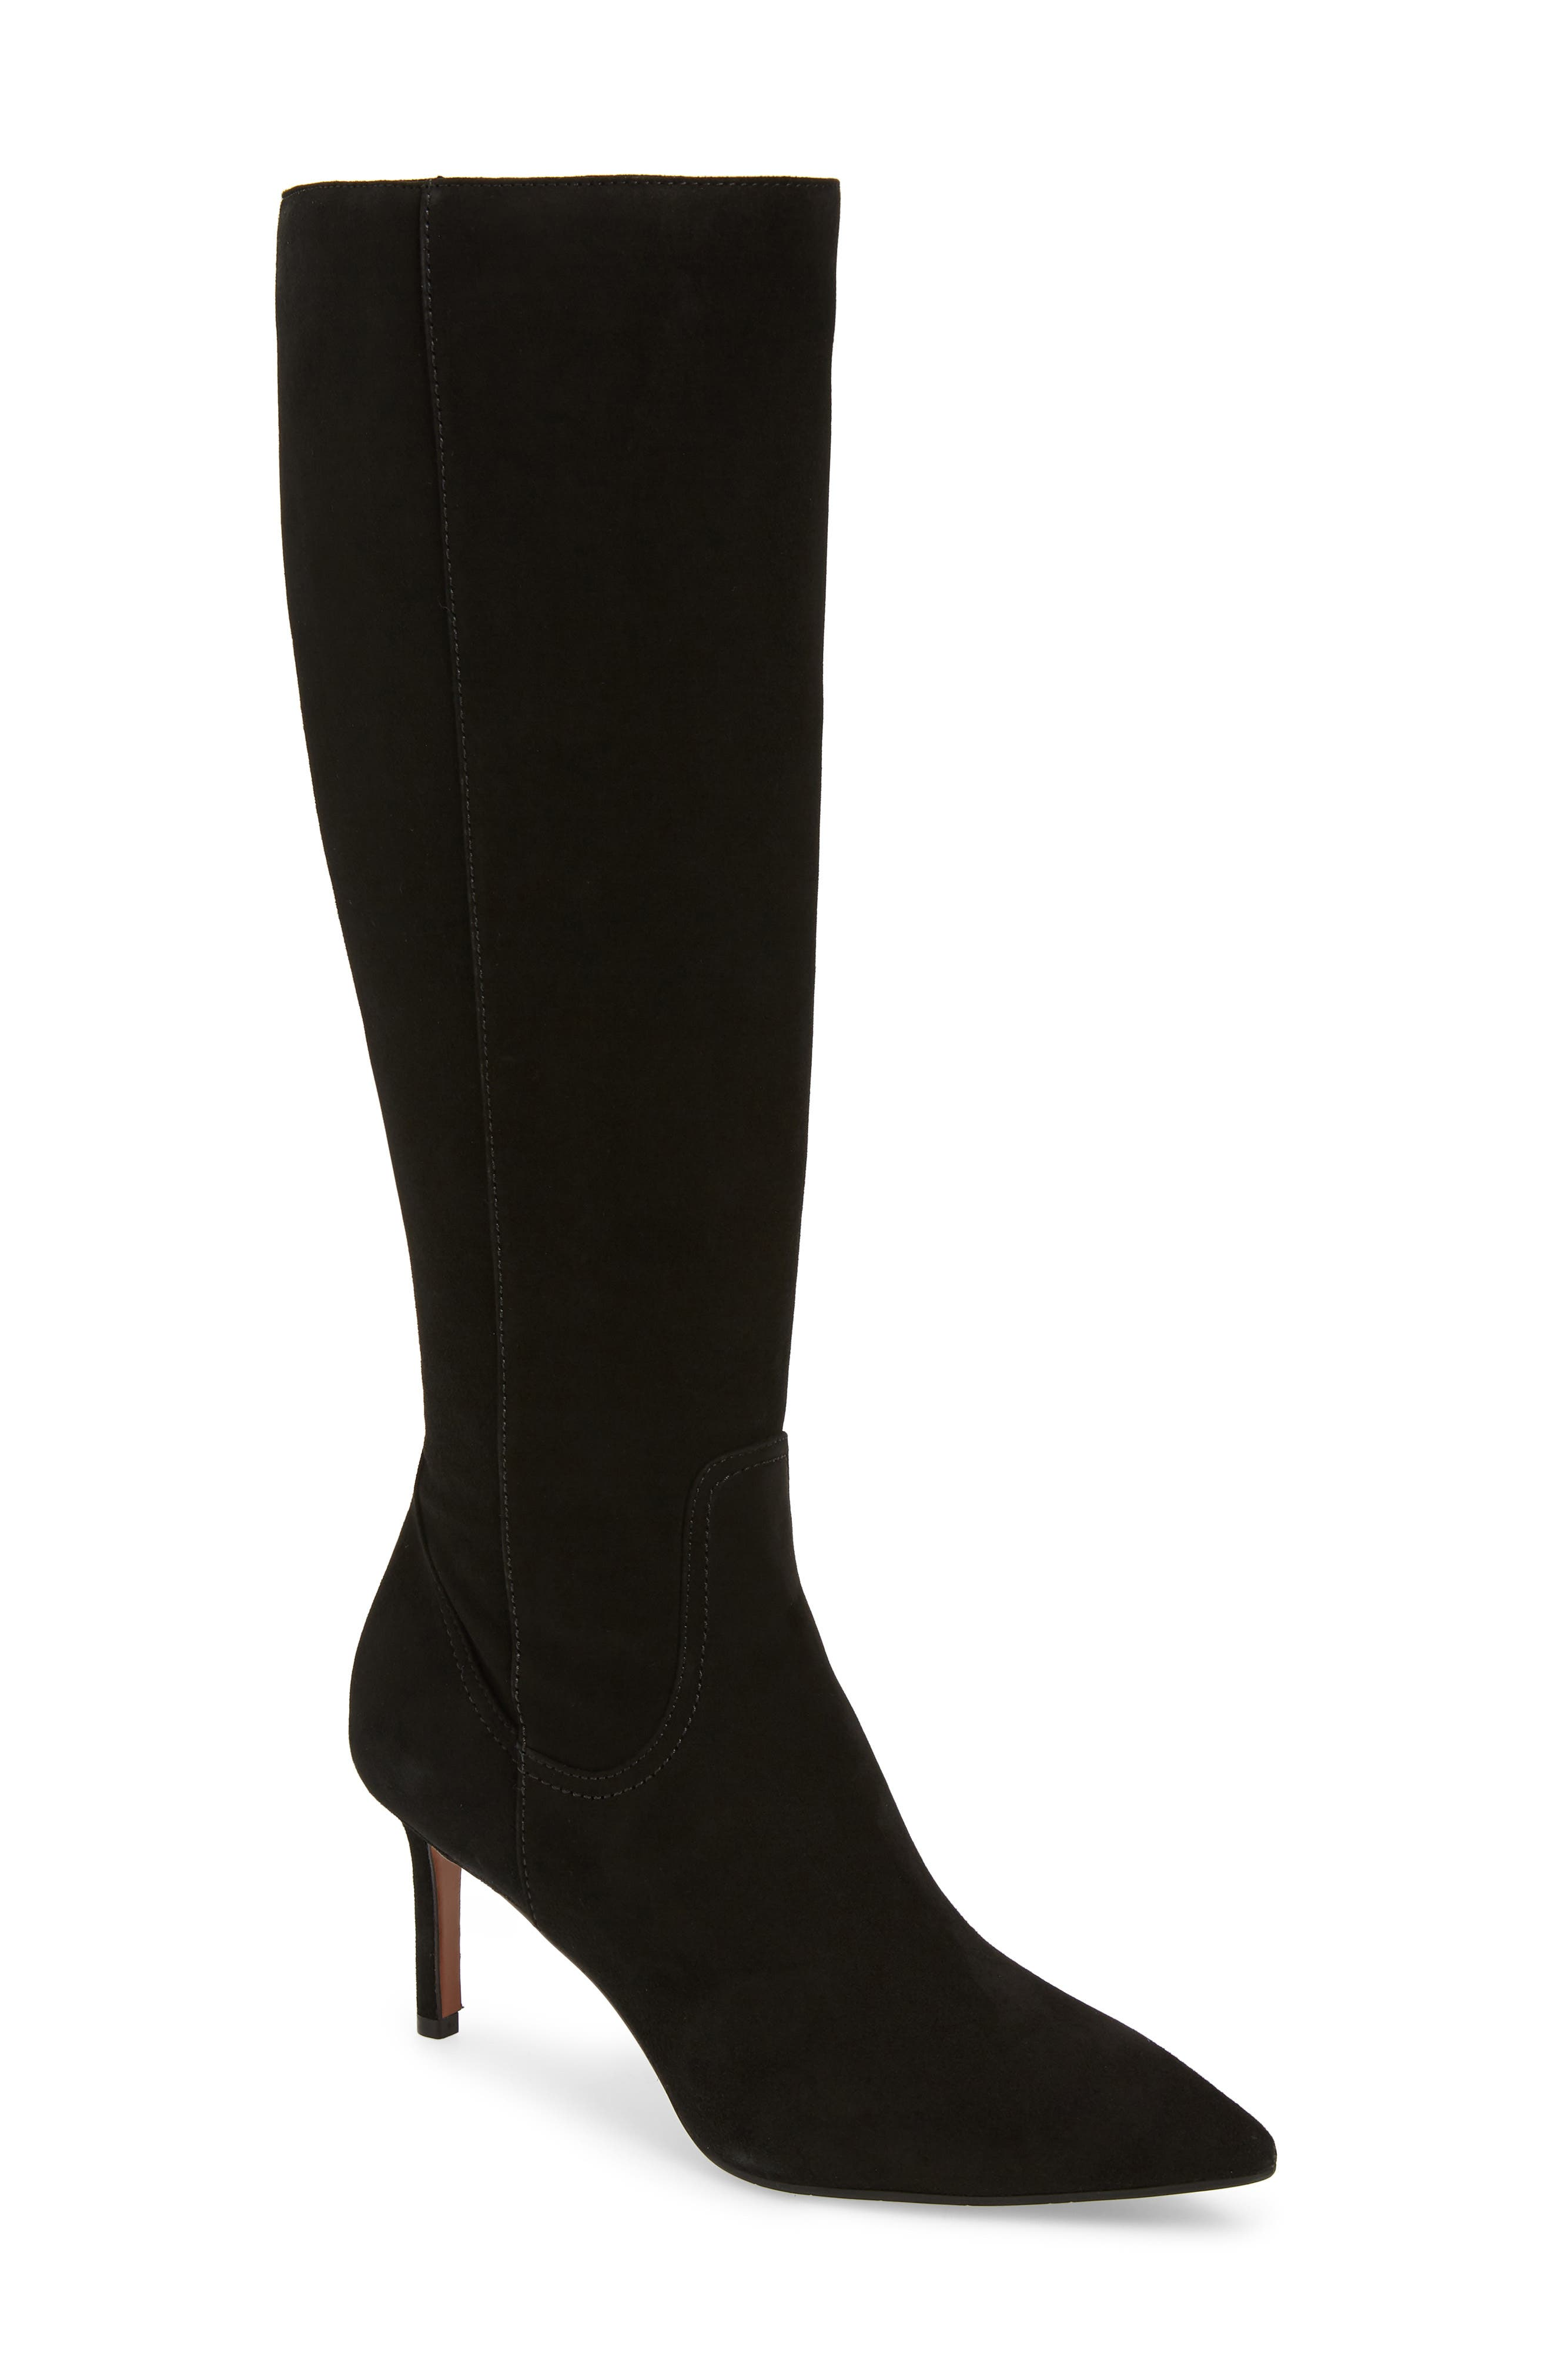 AQUATALIA Madison Suede Knee-High Boots in Black Suede